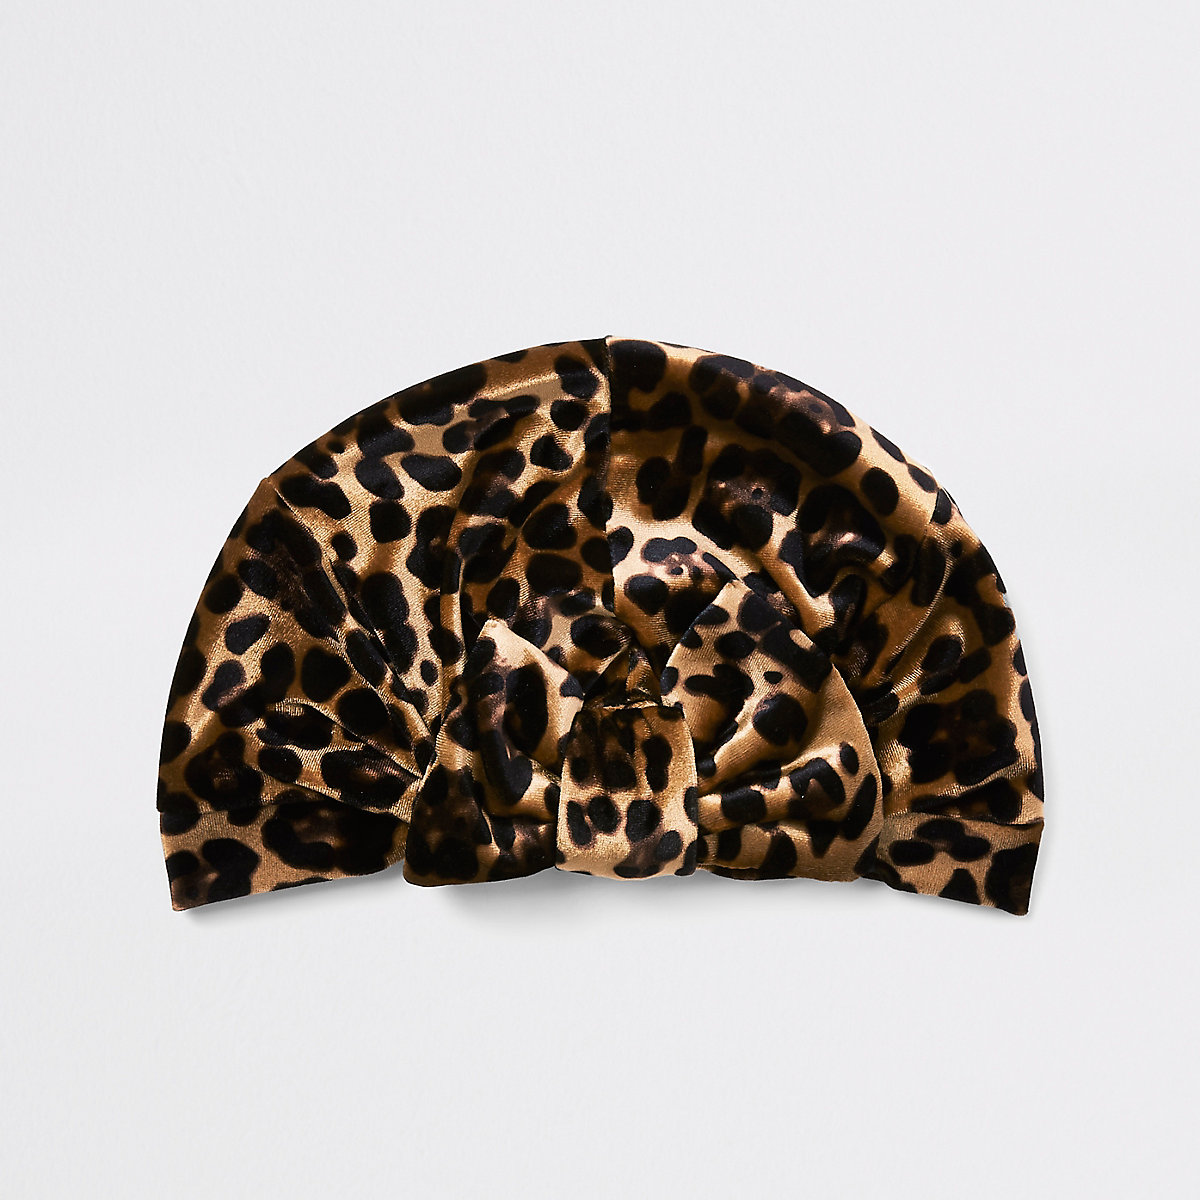 Girls brown leopard print bow turban headband - Hats - Accessories ... 4b0078f20a1b